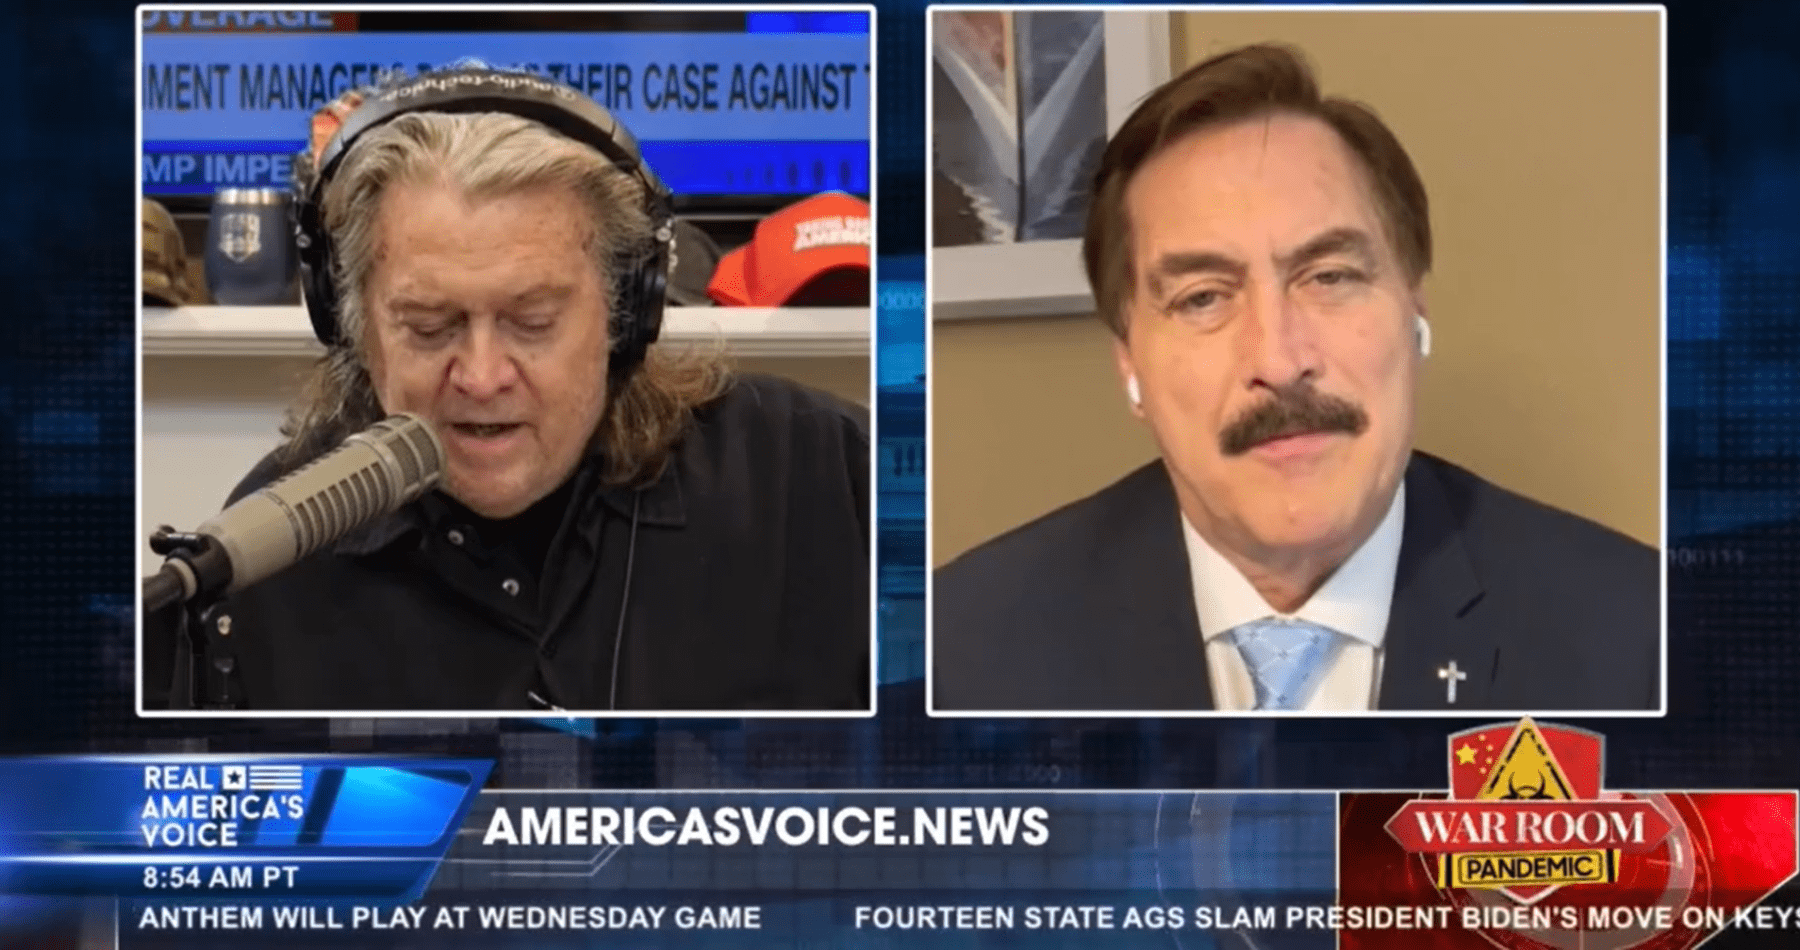 Bannon/Lindell Special On Election Fraud on OANN: Watch Here